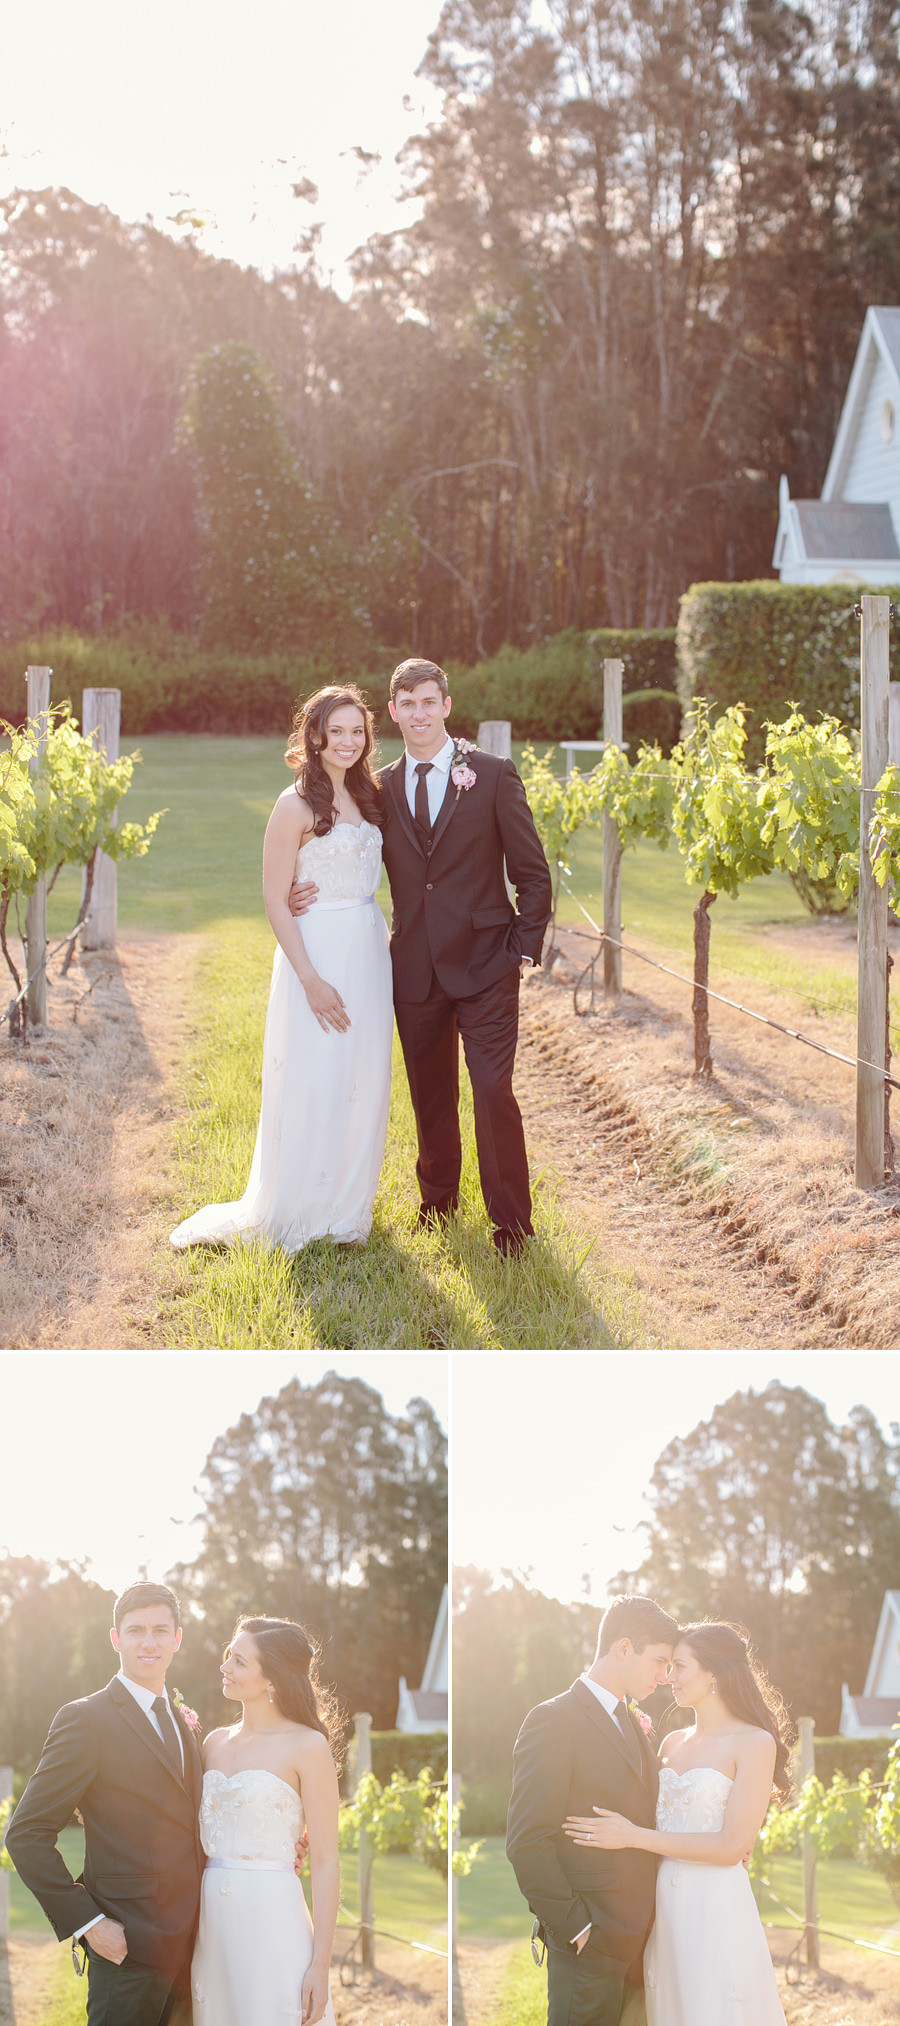 Pokolbin Wedding Photography: Vineyard portraits